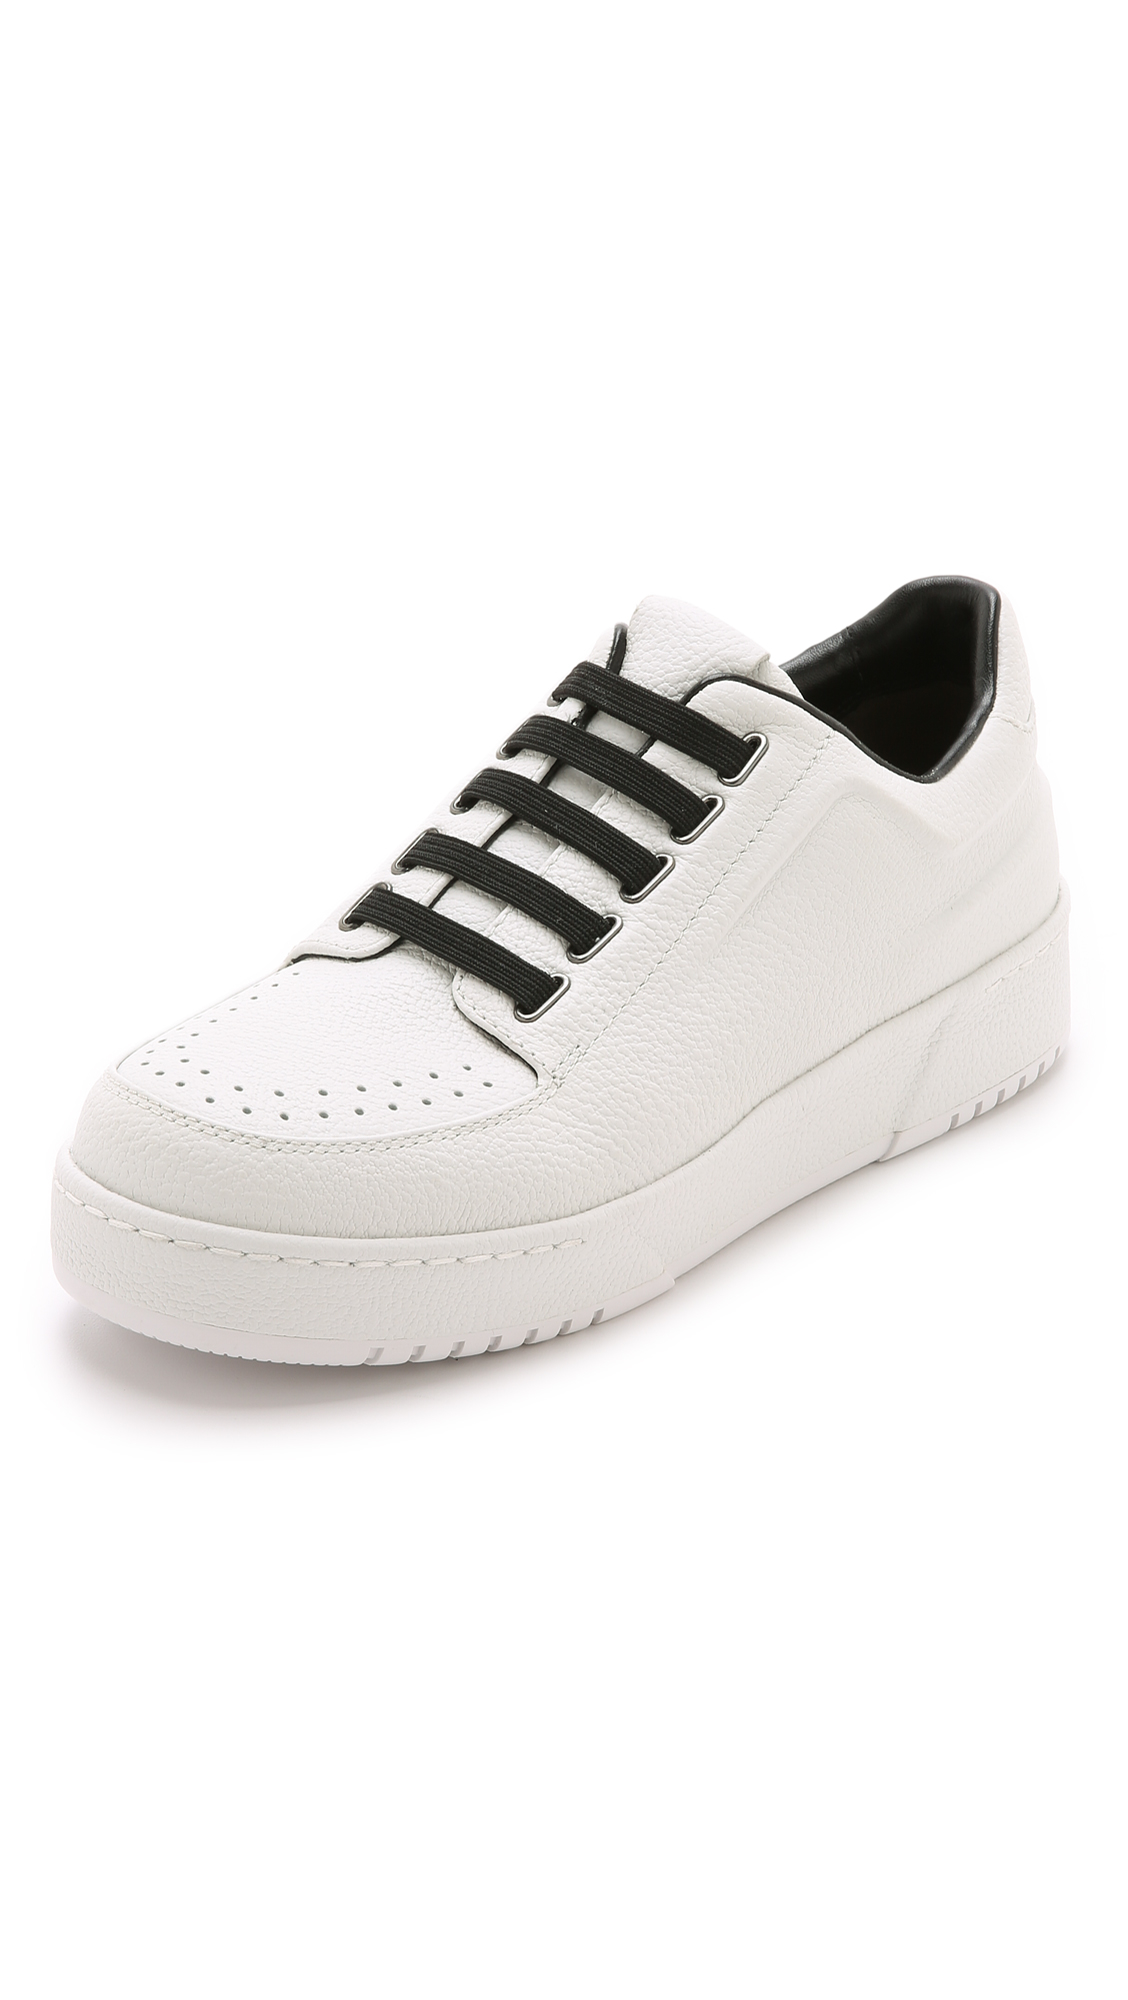 Pre-owned - Leather low trainers 3.1 Phillip Lim 8dazs